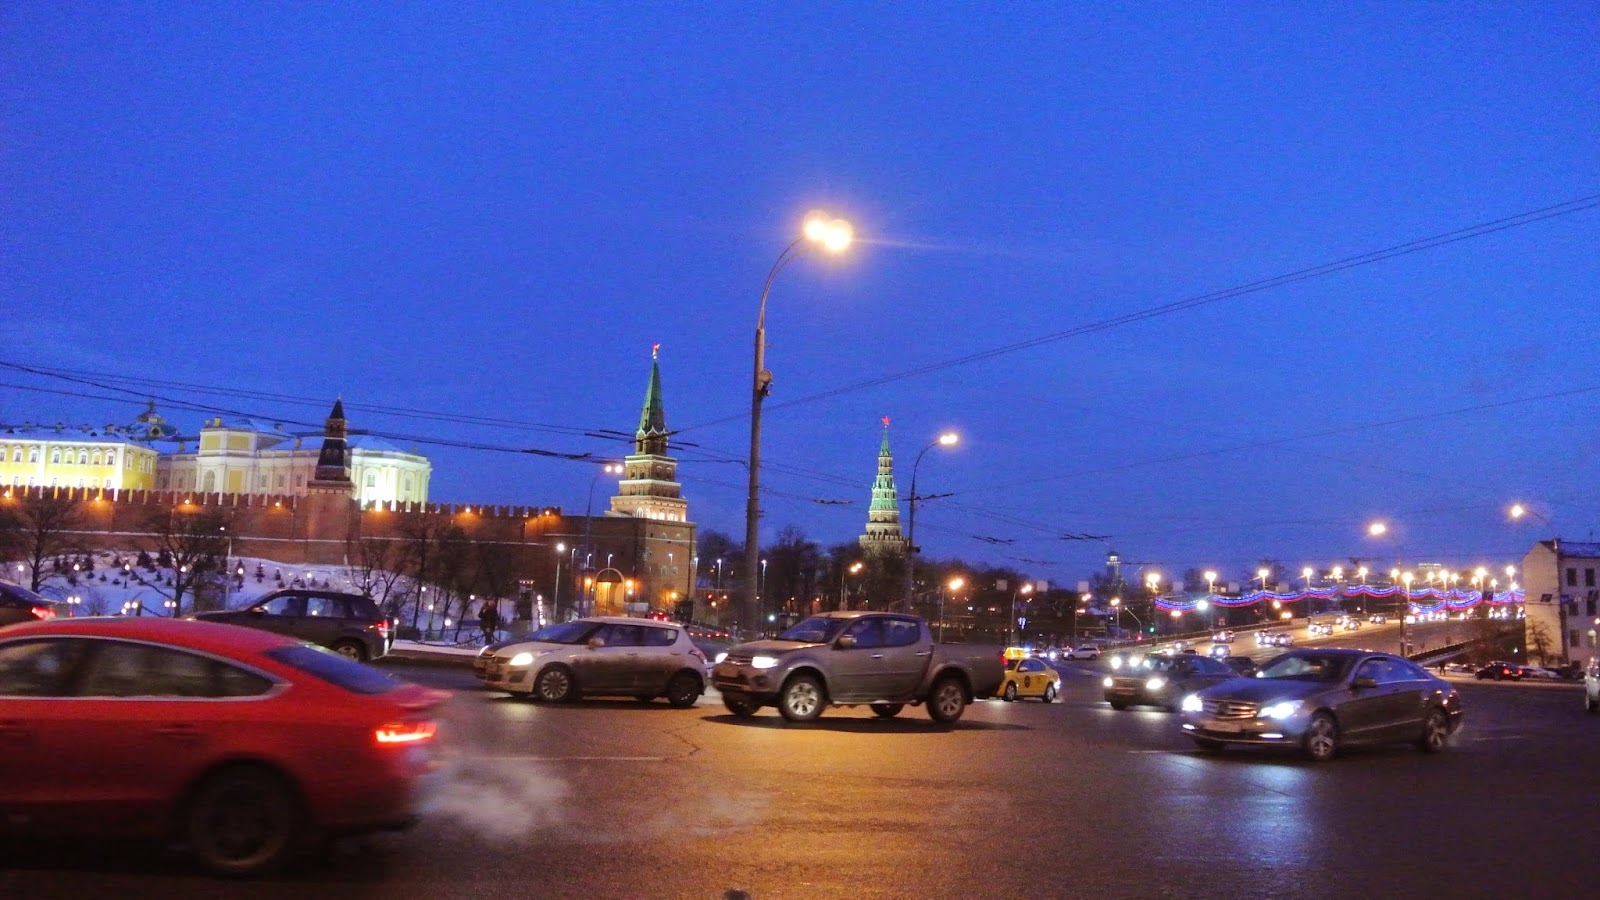 Busy traffic junction outside the Kremlin at night, Moscow